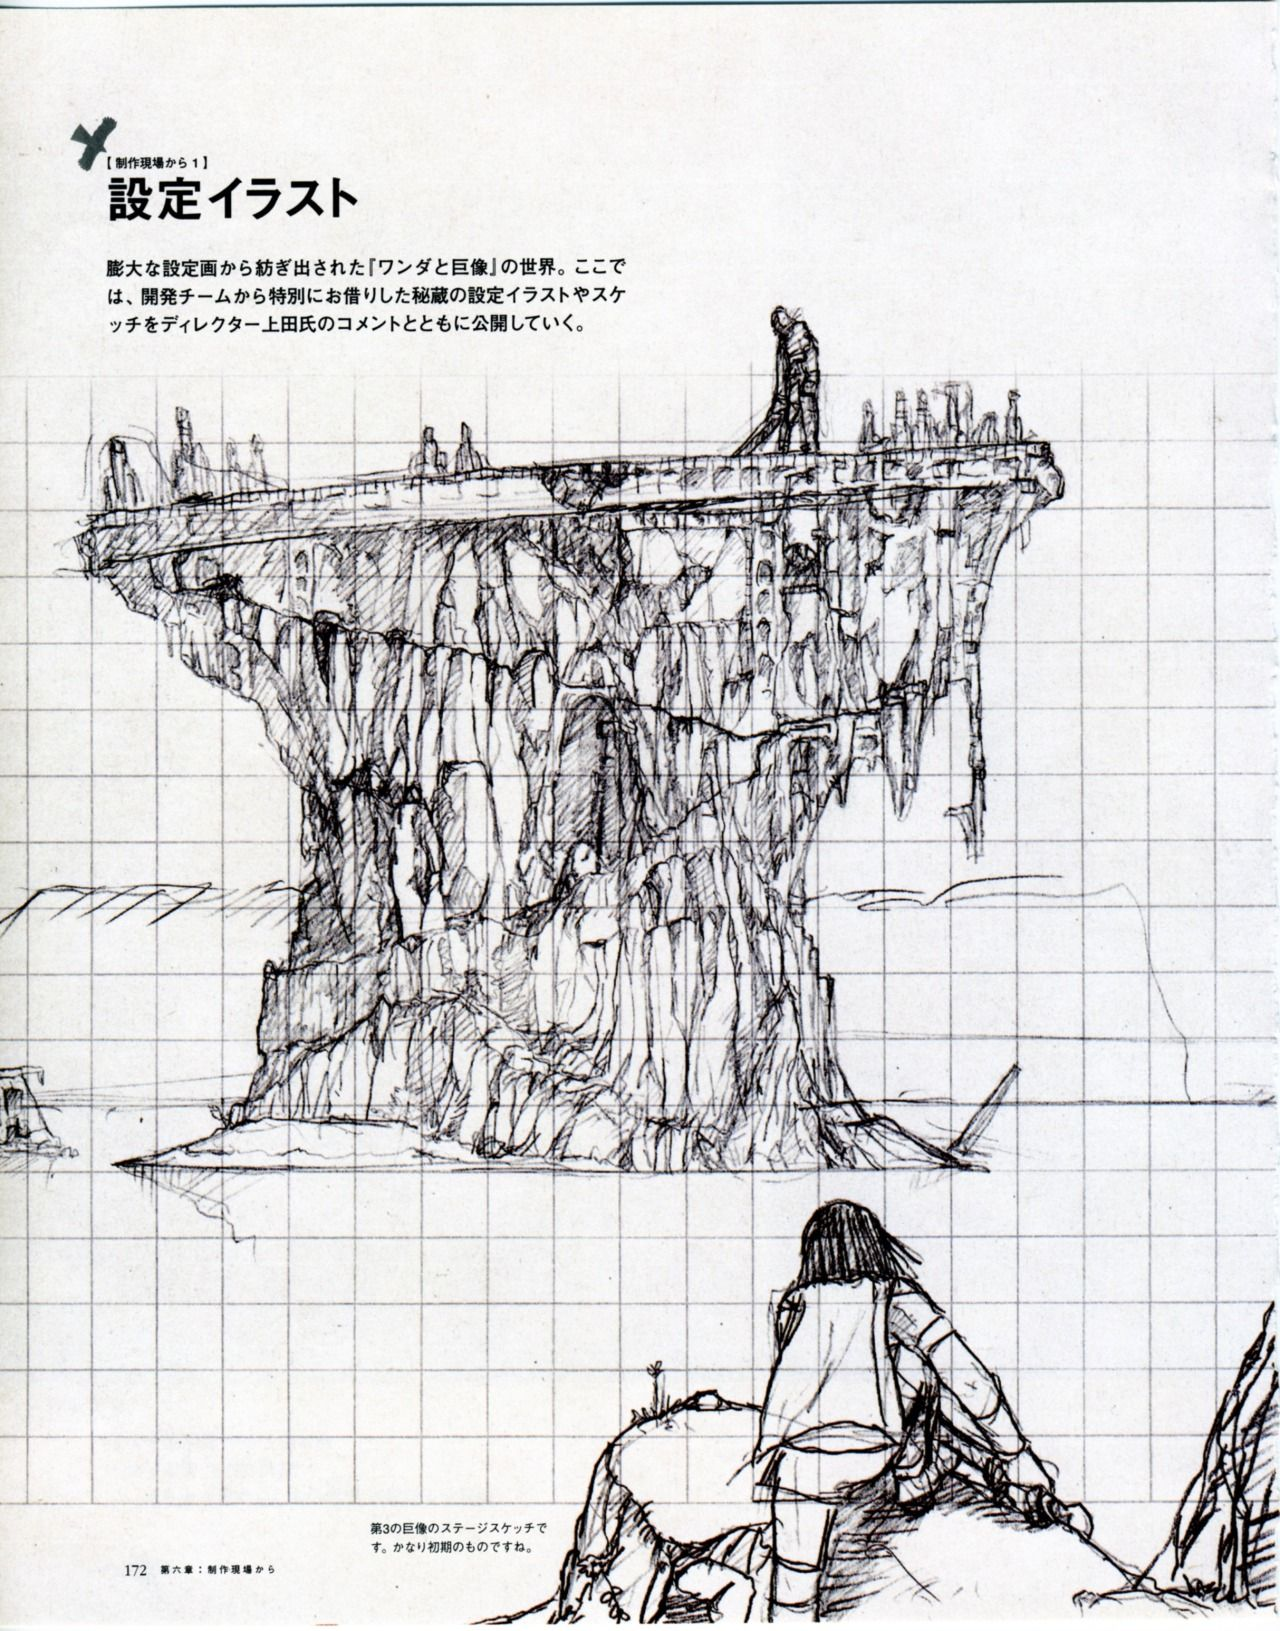 Ps3 Concept Art Ps2 Shadow Of The Colossus Artbook Hd